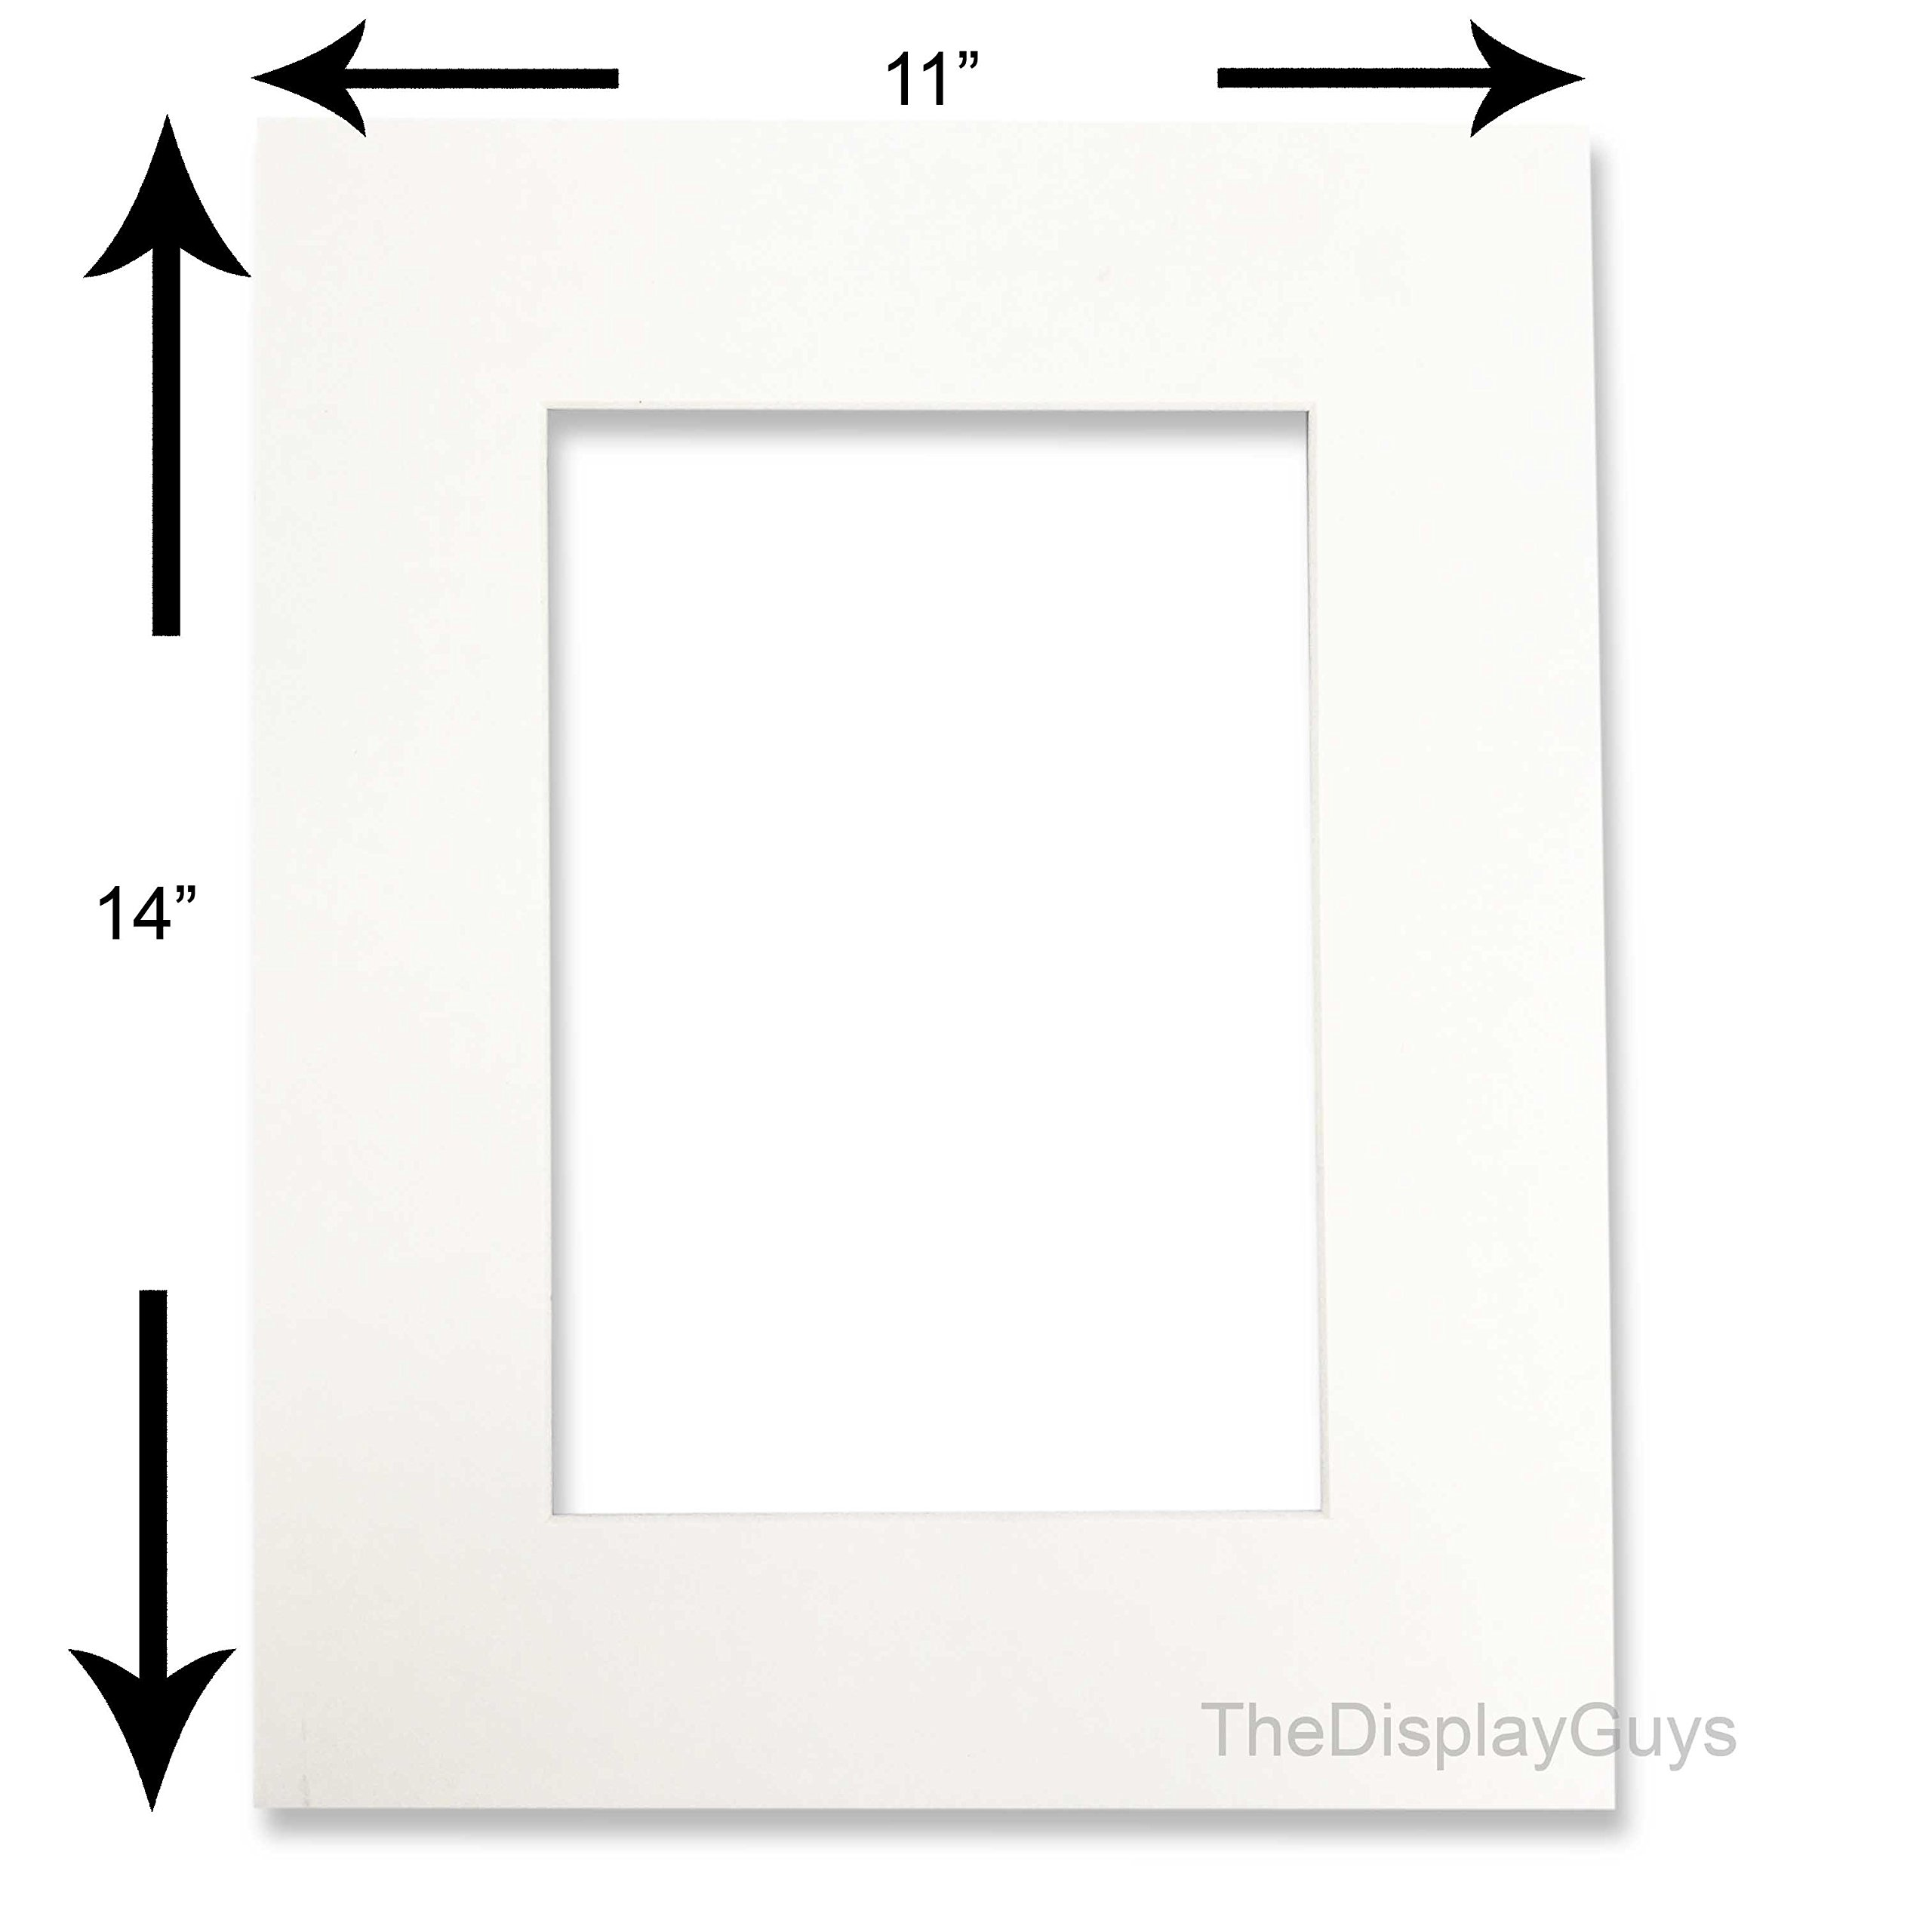 The Display Guys, Pack of 10pcs, Acid-Free White Pre-Cut 11x14 inches Picture Mat for 8x10'' Photo with White Core Bevel Cut Frame Mattes by The Display Guys